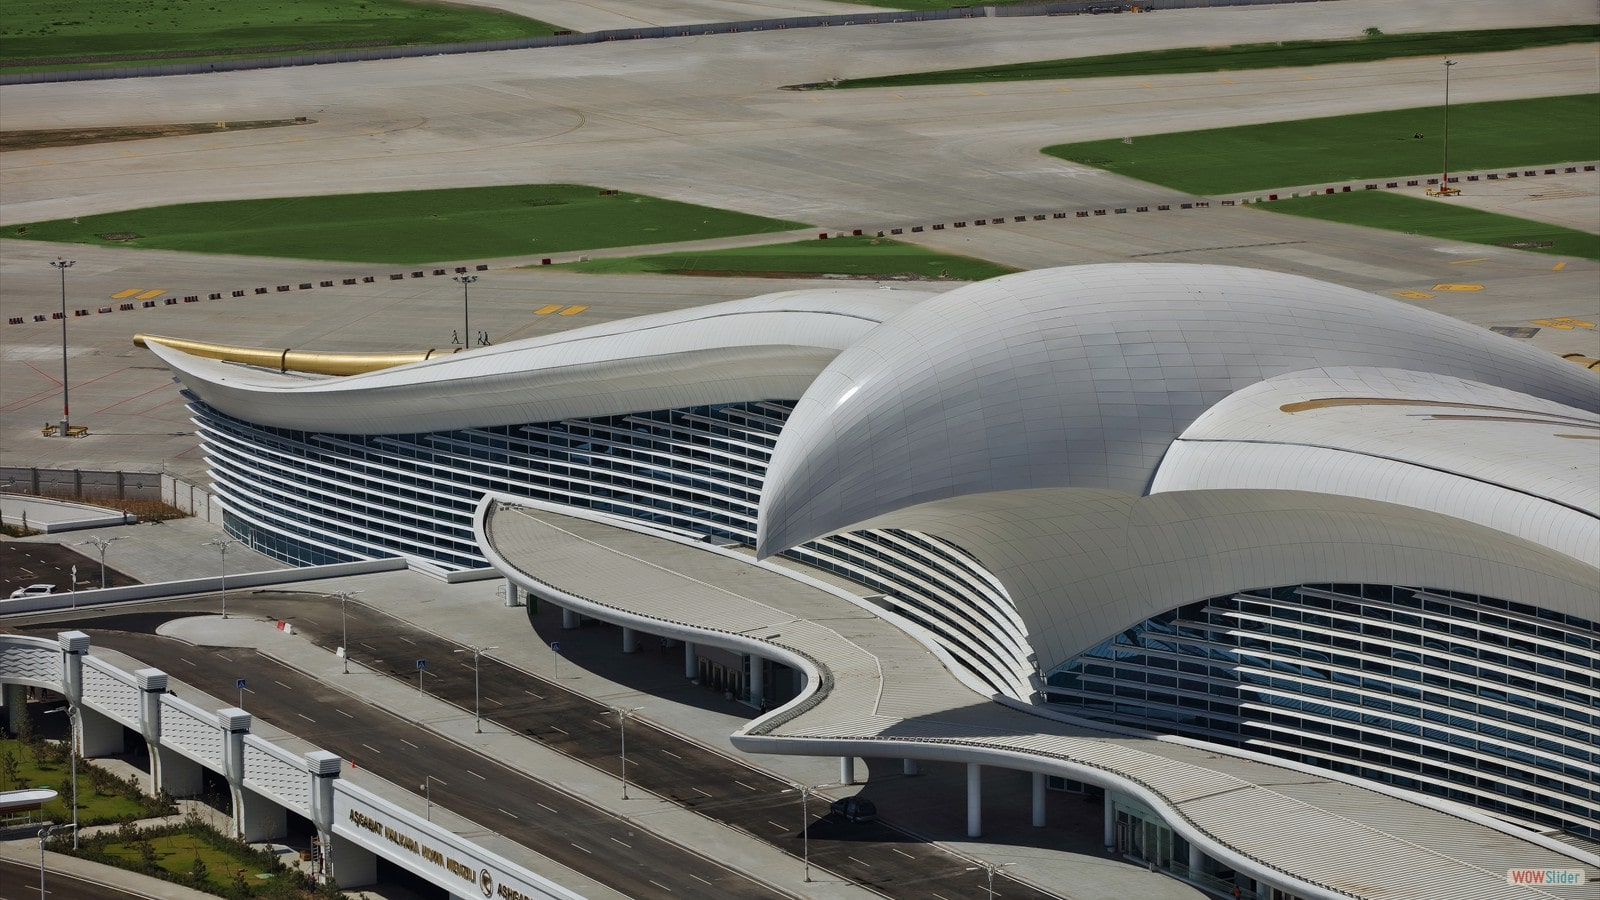 POHL / Ashgabat International Airport, Turkmenistan